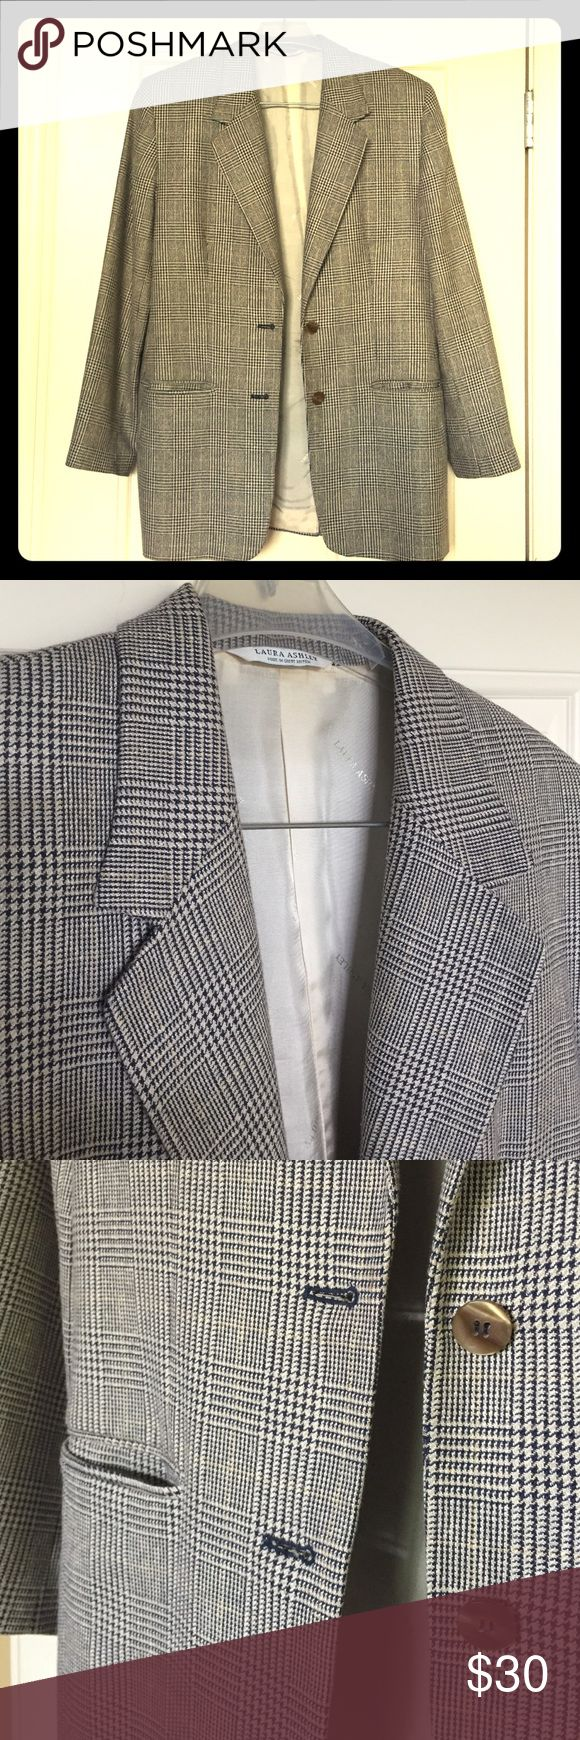 "🔲EUC Laura Ashley Silk Blend Houndstooth Blazer🔲 Excellent condition-only worn once! Beautiful long navy blue, white & tan/cream houndstooth plaid pattern blazer, Women's 8. Long sleeves. Front pockets. 2 front buttons. Built-in, soft, thin shoulder pads. 9"" Back slit. Made in Great Britain. 💼Material: 55% Silk, 45% Wool. Lining: 100% Viscose/Rayon. 💼Measurements: Length from shoulder: 28.5"", Sleeve Length: 23.5"", Bust (buttoned): 20"" flat/40"" full.💃Offers Welcome & Bundling Discounts…"